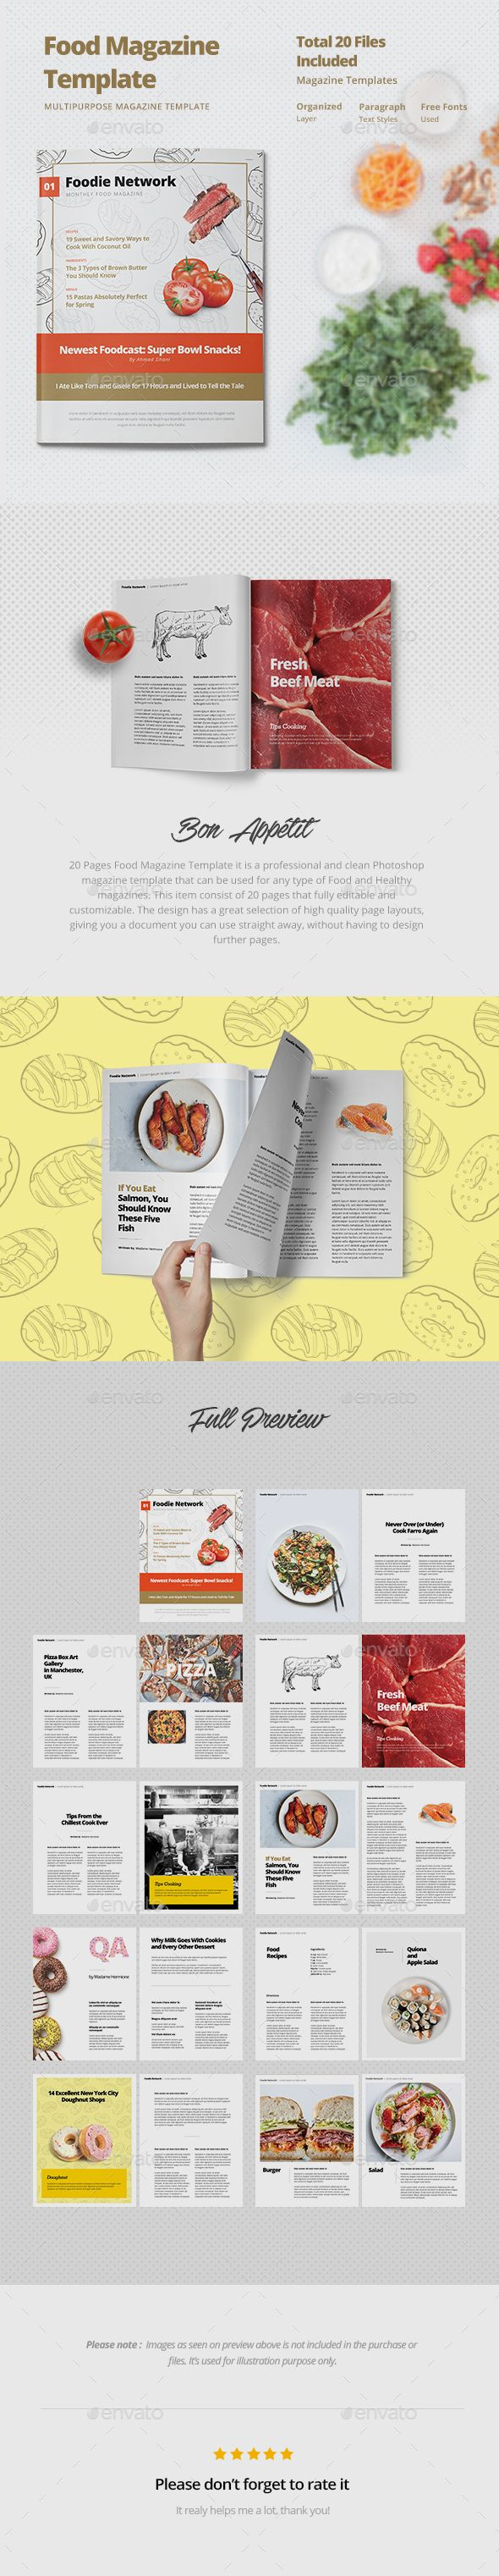 Layout photoshop web design website template tutorials tutorial 022 - 20 Pages Food Magazine Template Psd Download Here Http Graphicriver